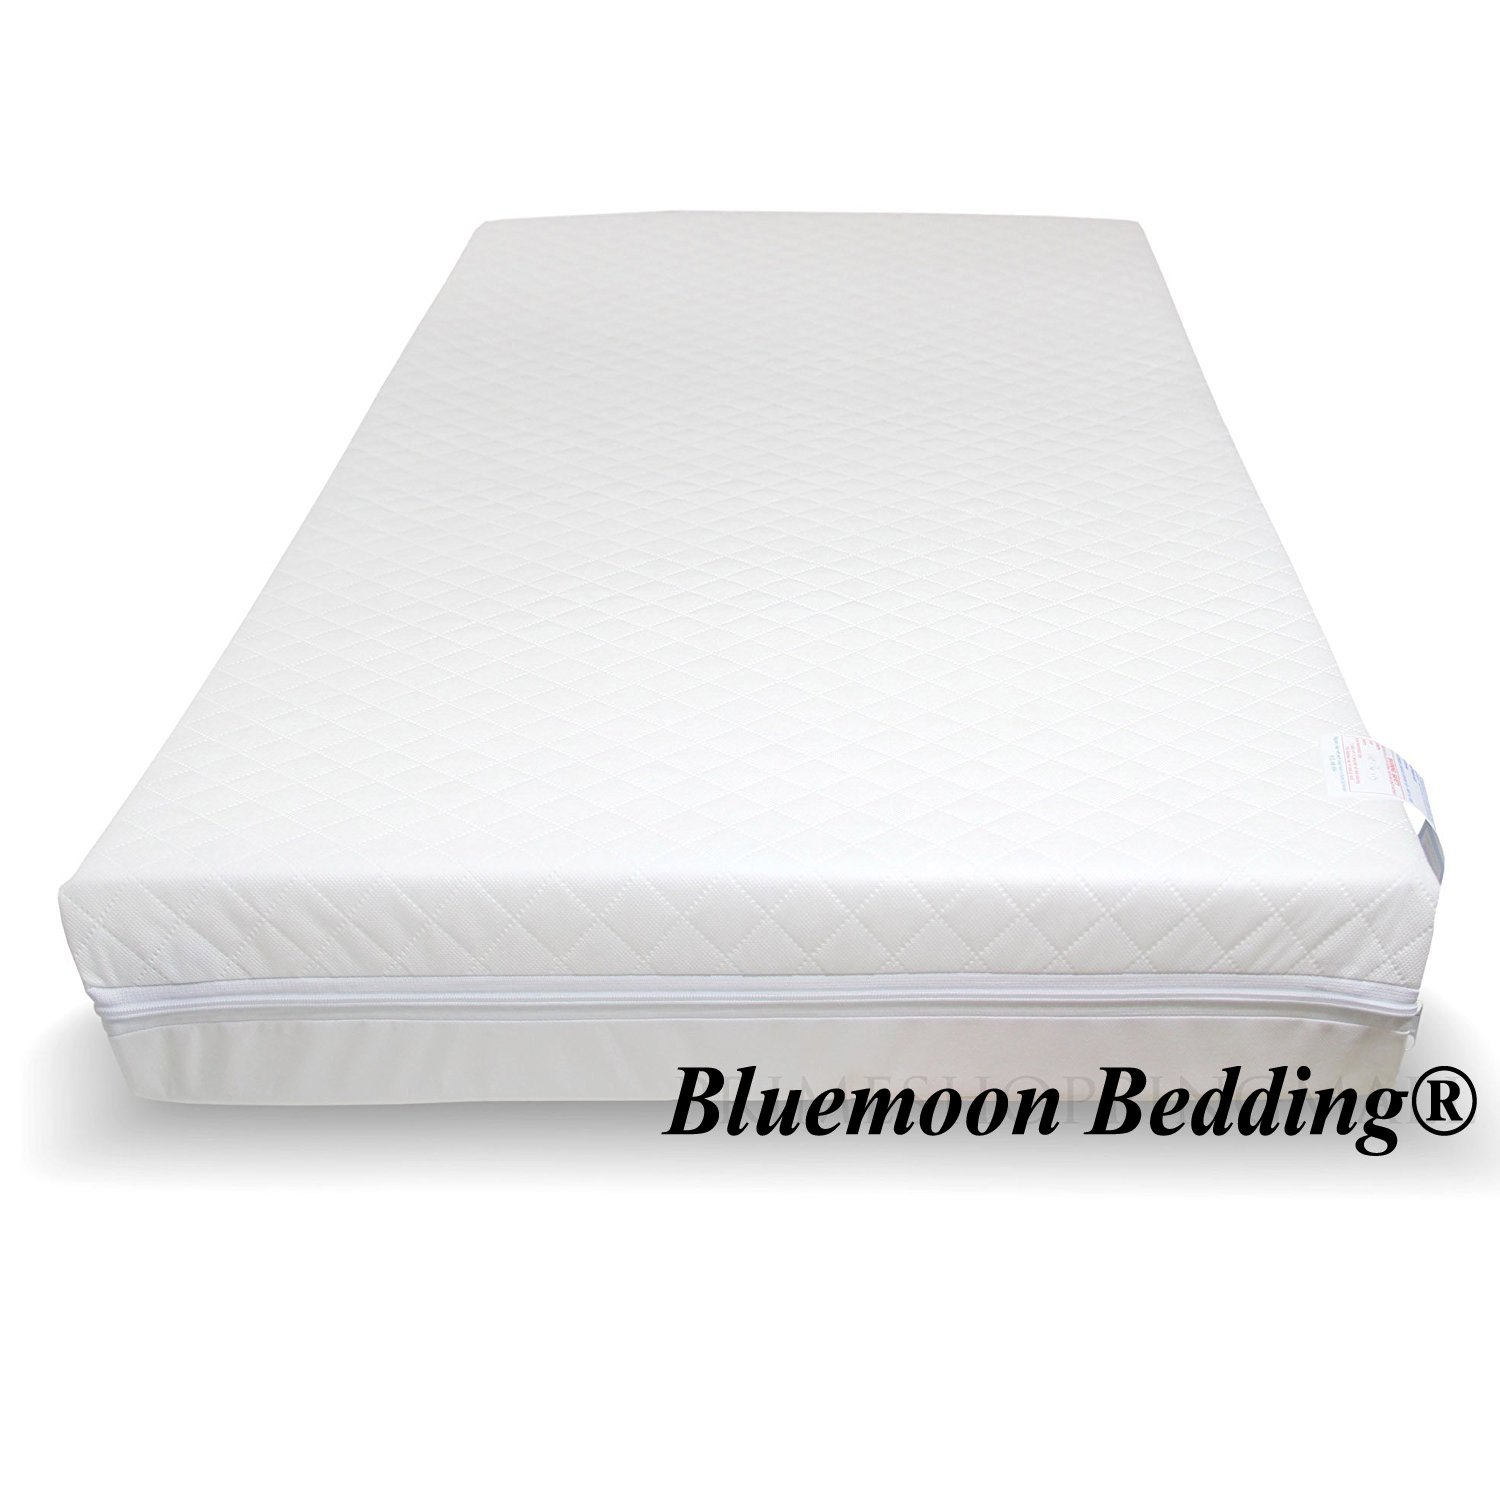 ALL SIZES QUILTED BABY COT BED/TODDLER MATTRESSES BREATHABLE & WATERPROOF (160x60x10 cm) Bluemoon Bedding®